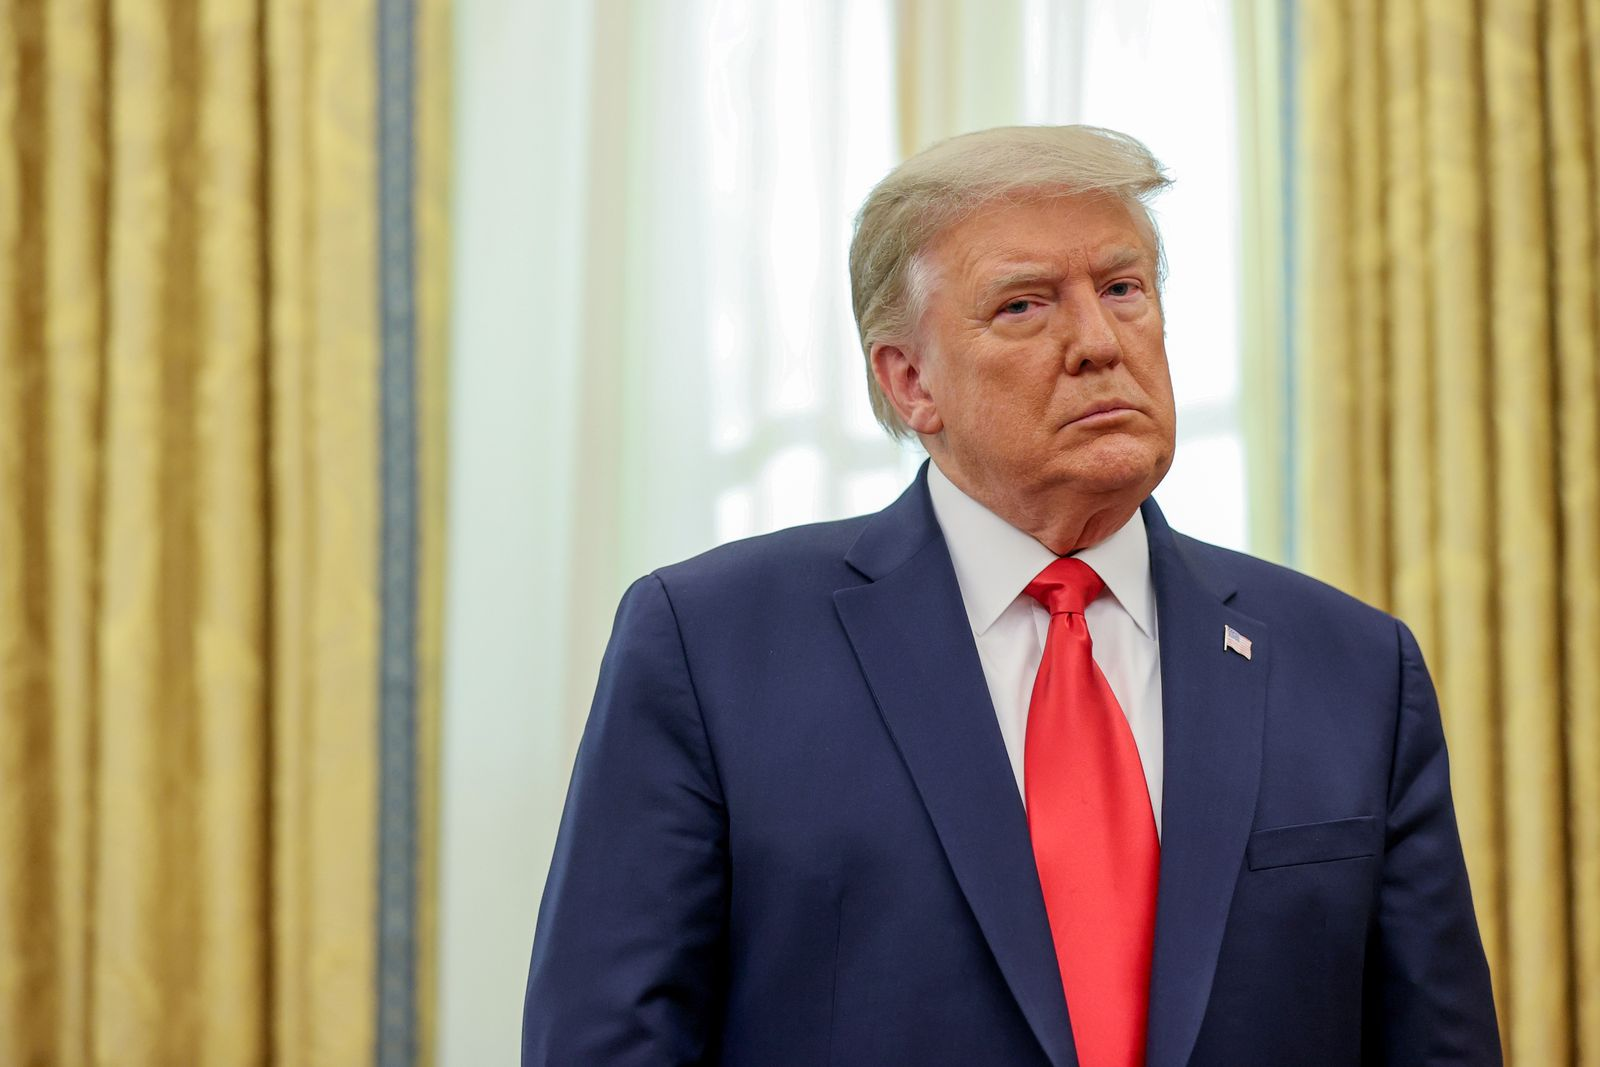 FILE PHOTO: U.S. President Trump participates in a medal ceremony in the Oval Office at the White House in Washington